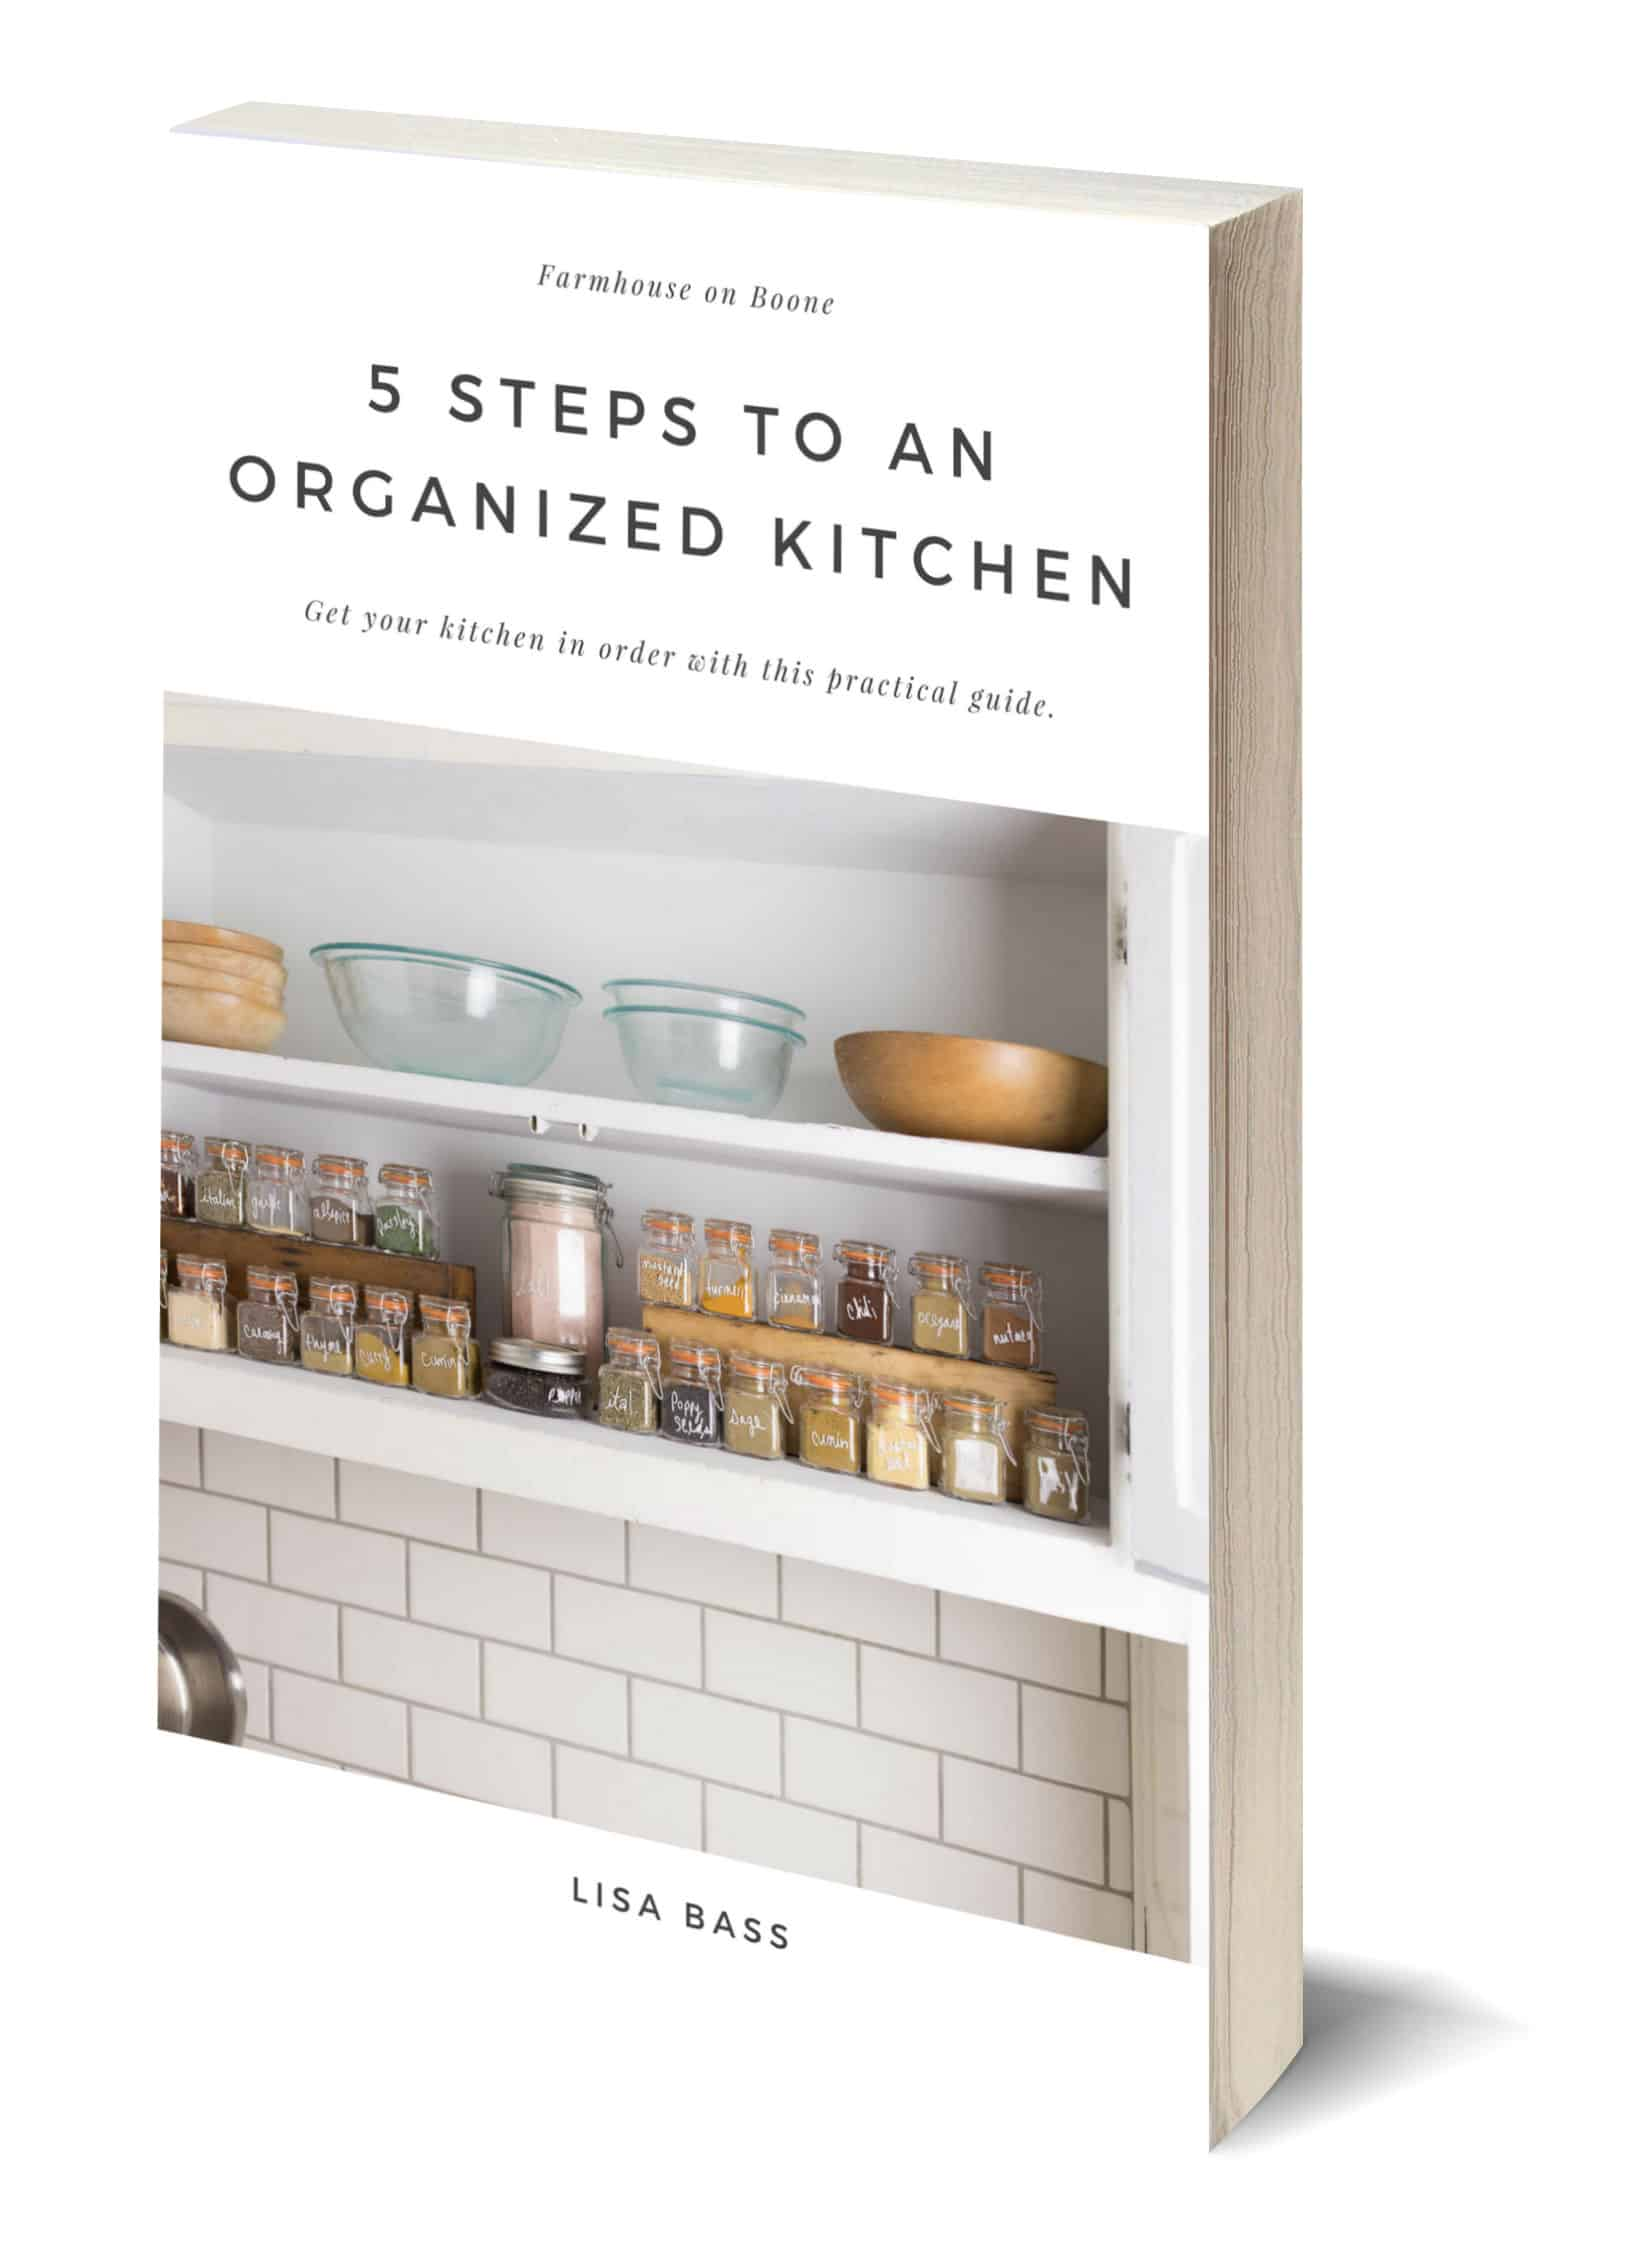 storage ways baking kitchen organized inserts organizer organization tips under before out organize shelves for organizers get to cupboard drawer cabinet and easy supplies drawers your after pull